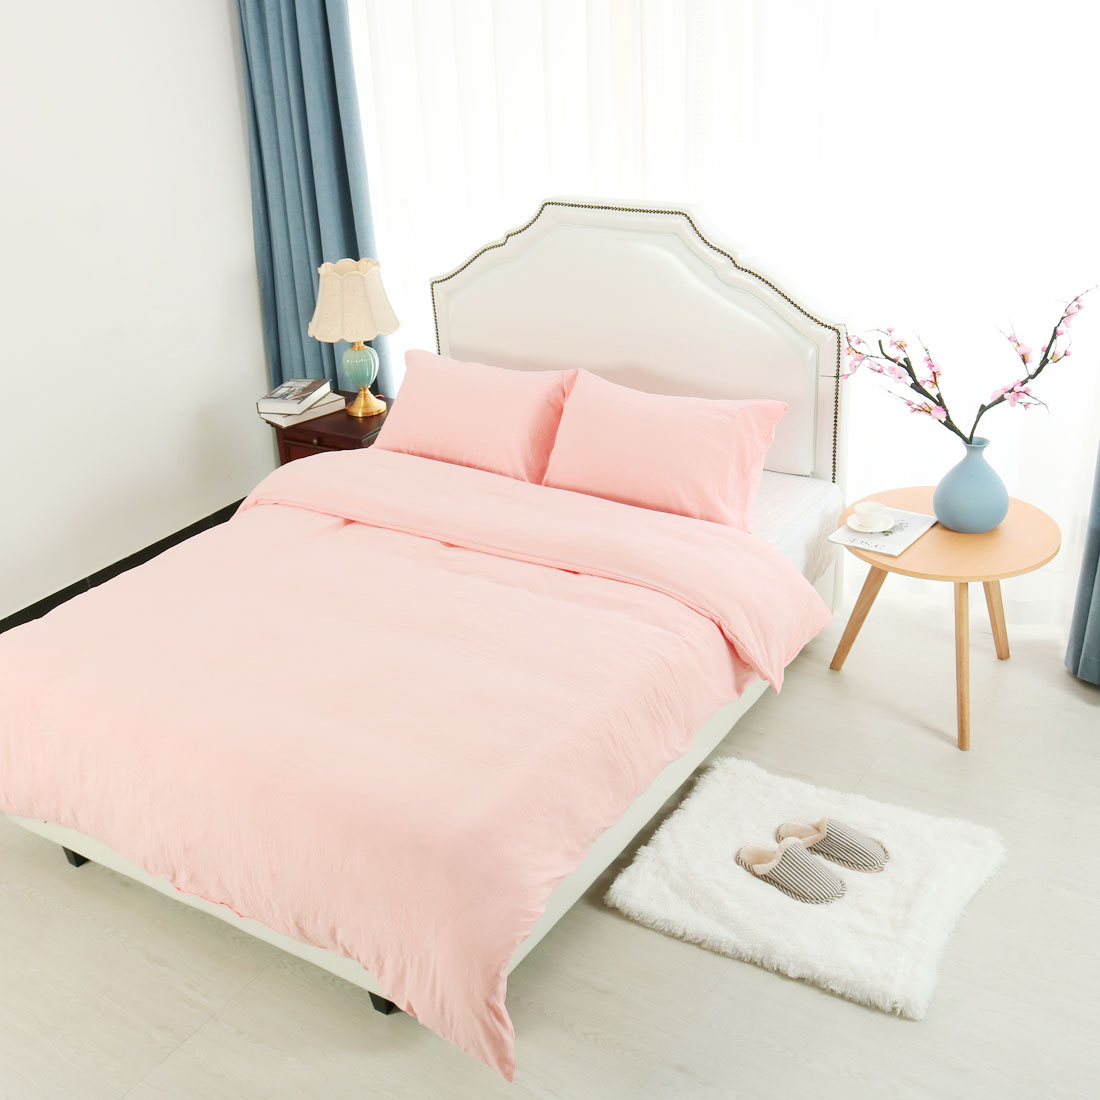 Full Duvet Cover Set (1 Duvet Cover + 2 Pillowcases) Washed Cotton Coral Pink